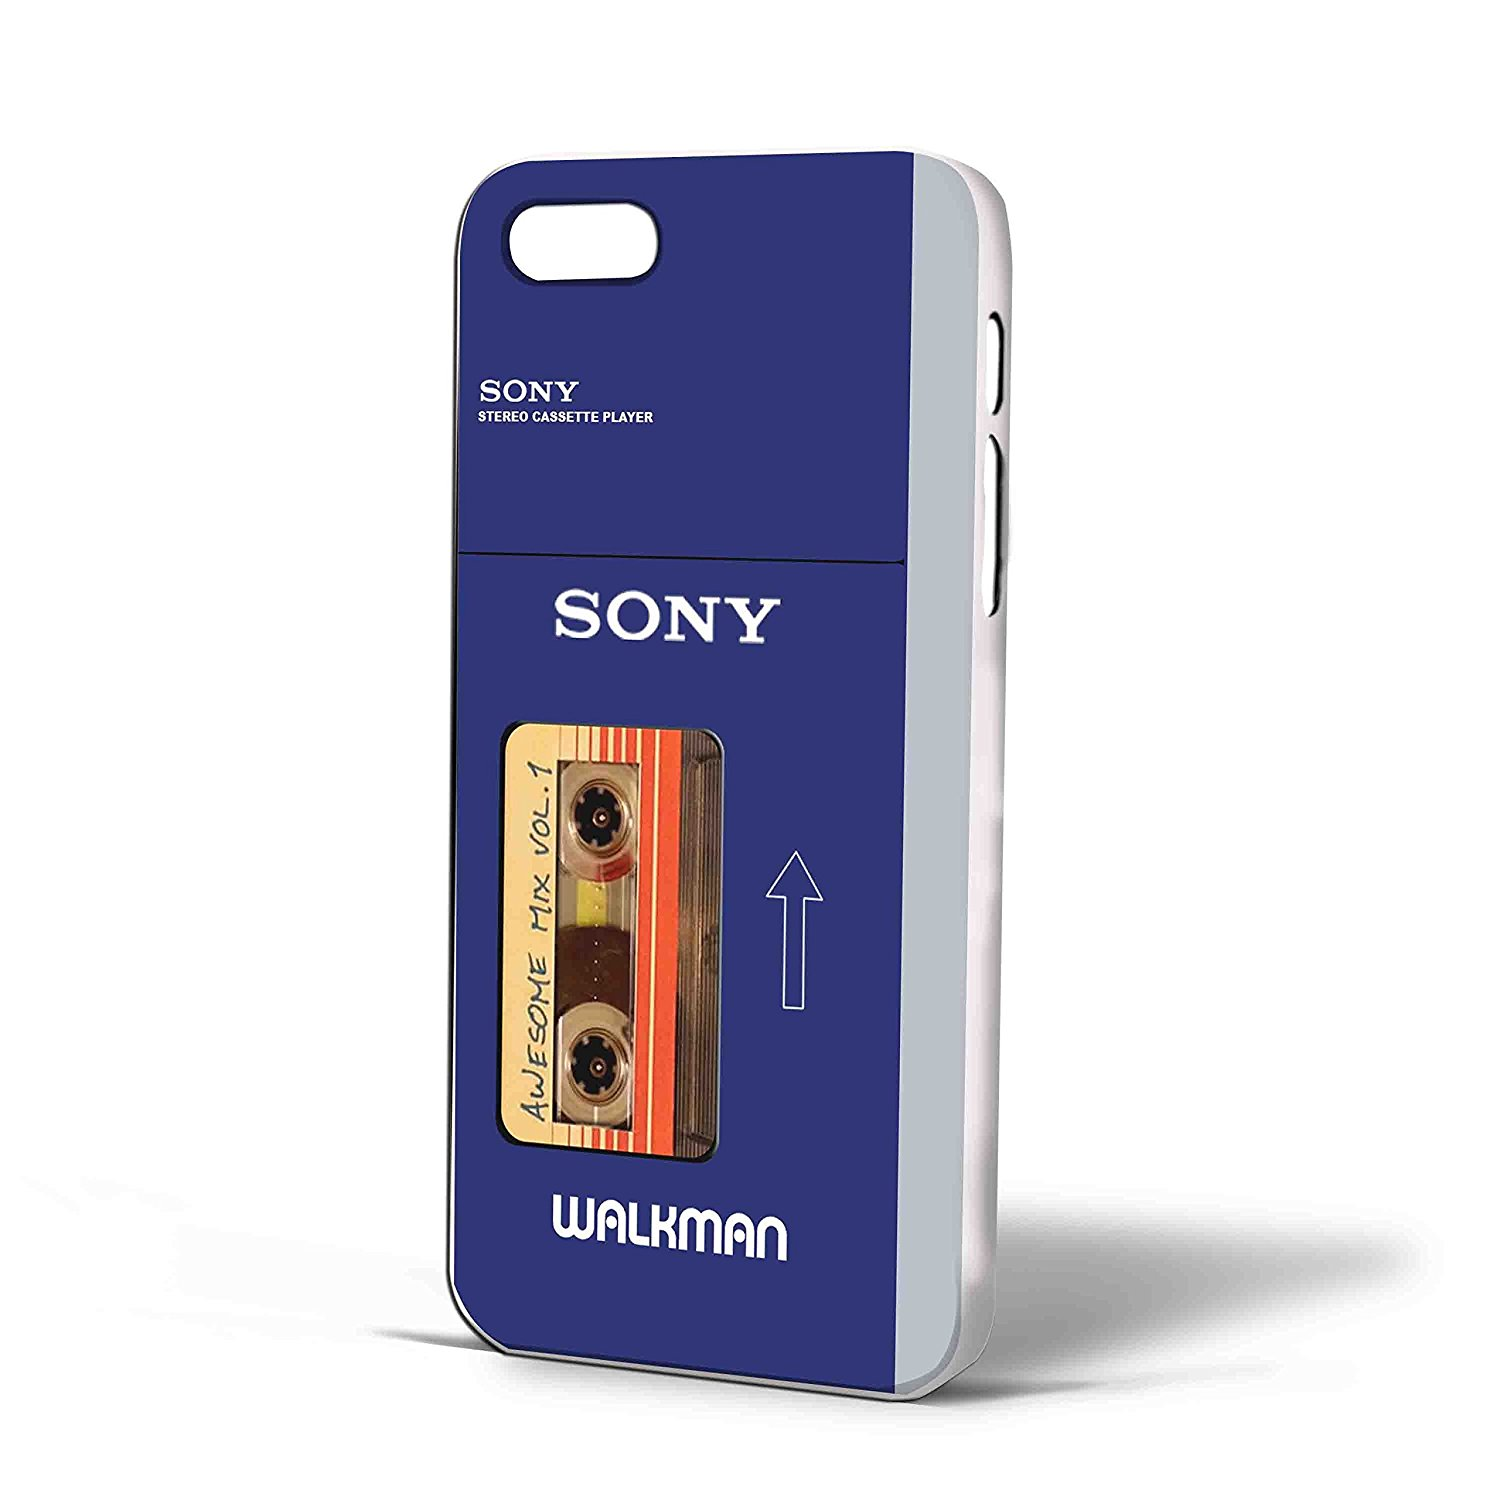 Ganma Guardians of the Galaxy Awesome Mix Tape Vol 1 Sony Walkman Case For iPhone Case (Case For iPhone 5/5s White)